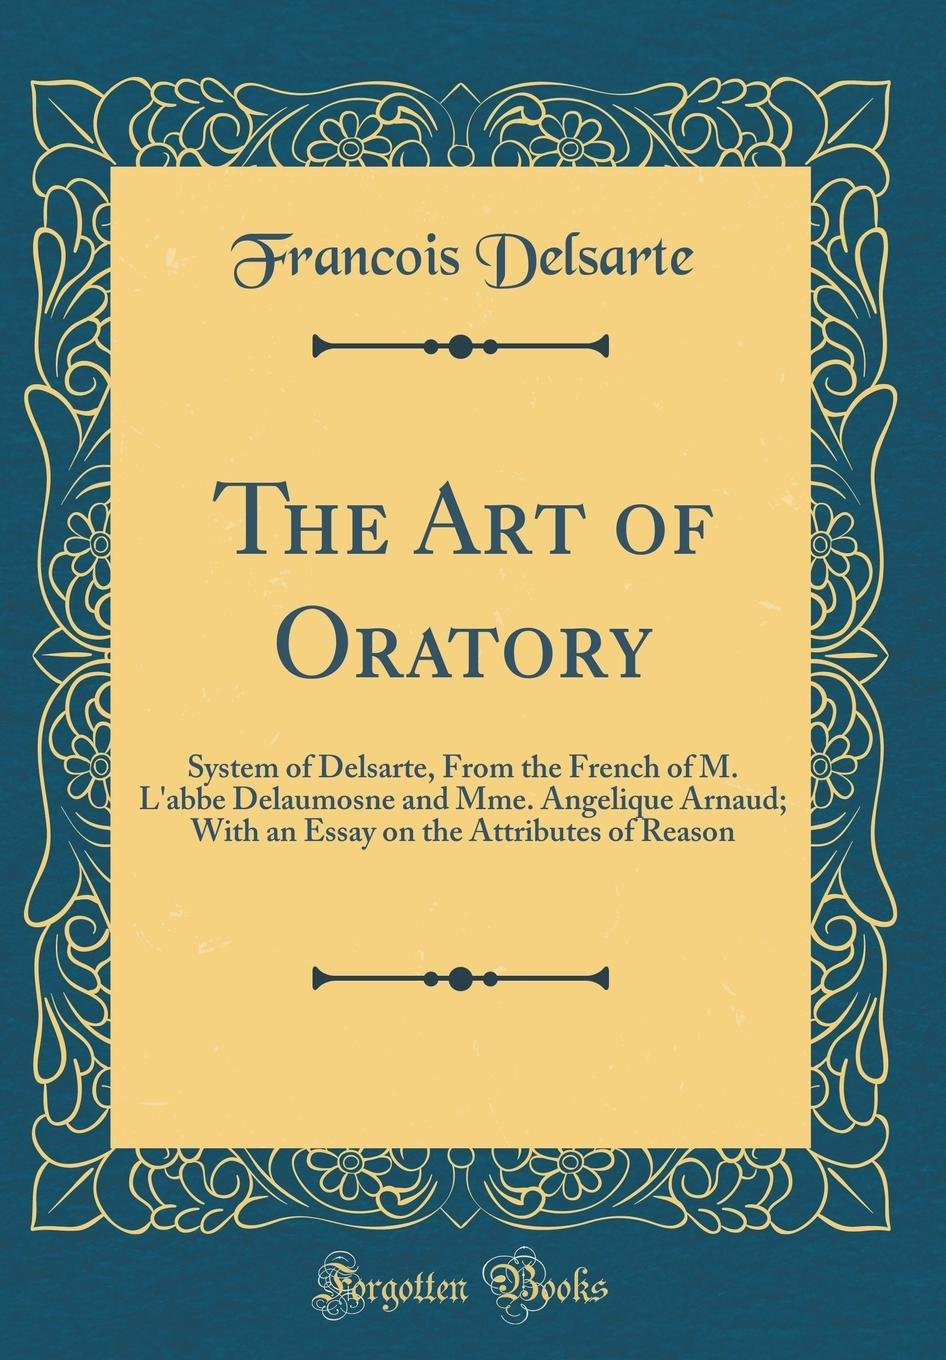 The Art of Oratory: System of Delsarte, from the French of M. l'Abbe Delaumosne and Mme. Angelique Arnaud; With an Essay on the Attributes of Reason (Classic Reprint) PDF